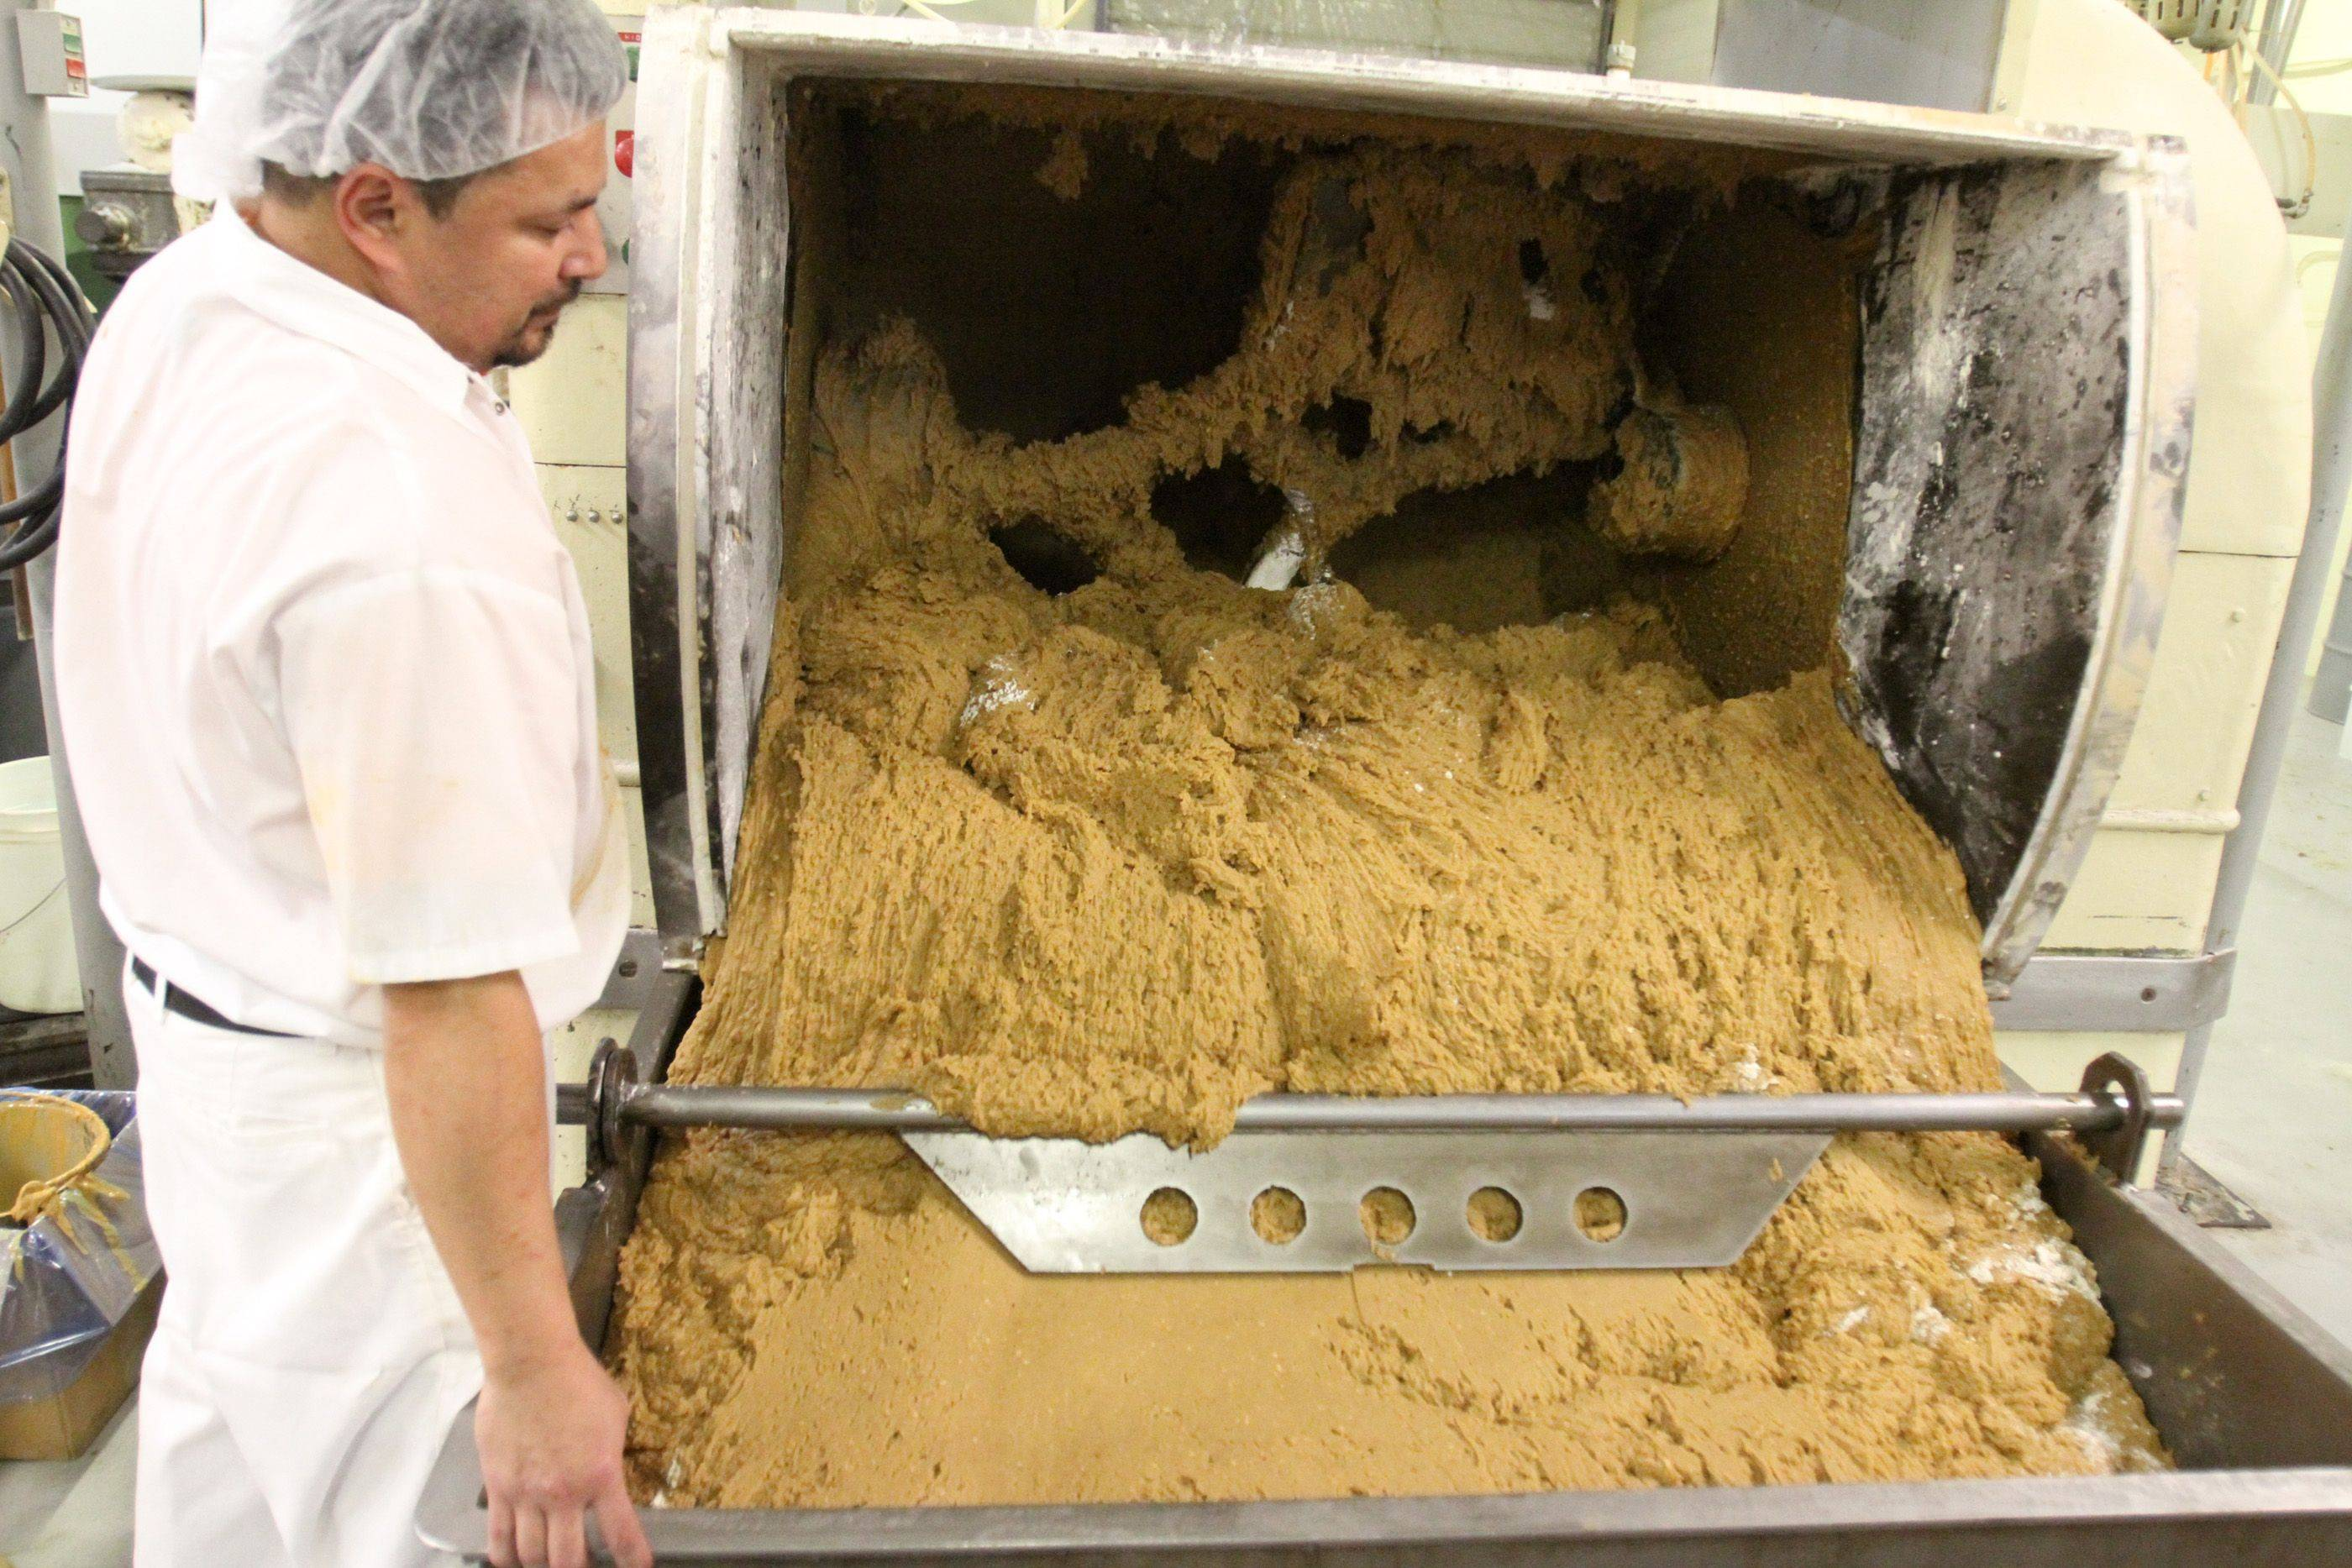 Gerardo Ramirez mixes cookie dough in one of two giant mixers.